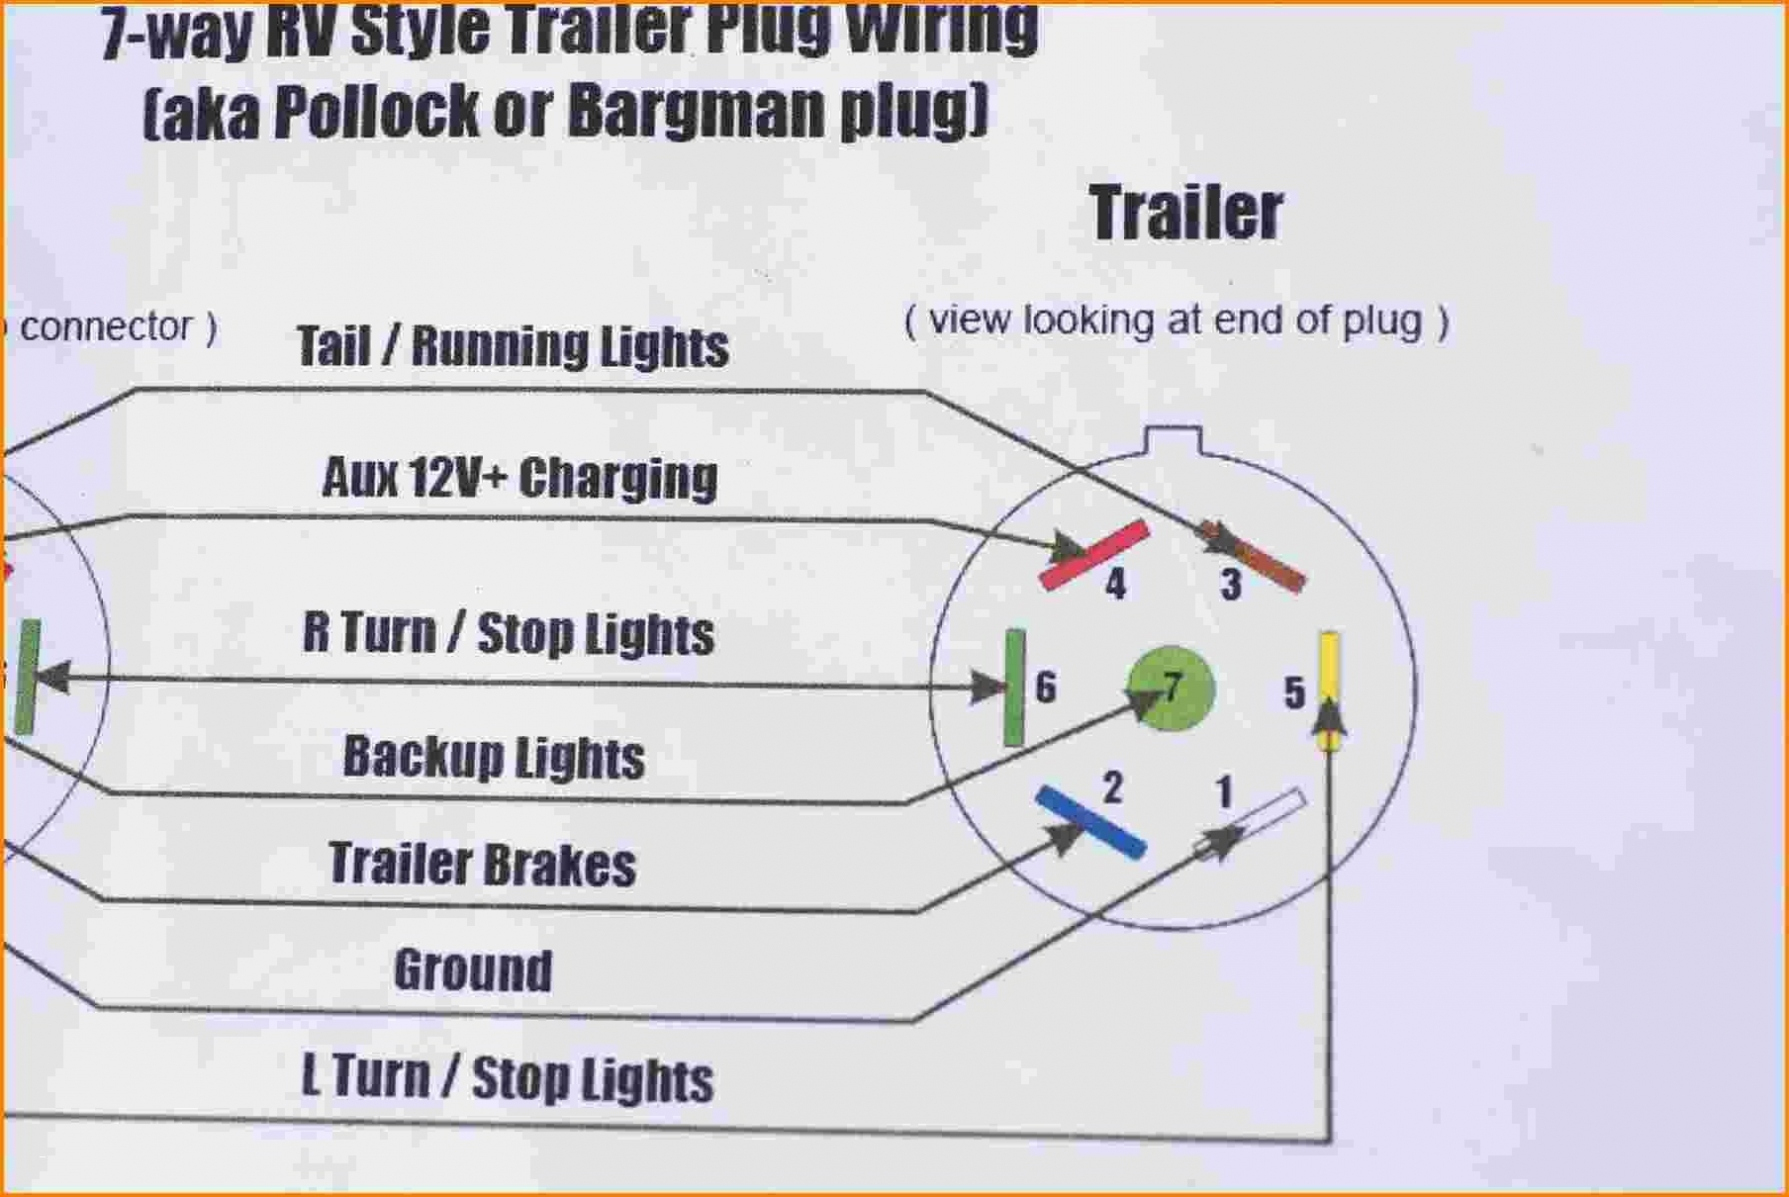 Gore Trailer Wiring Diagram